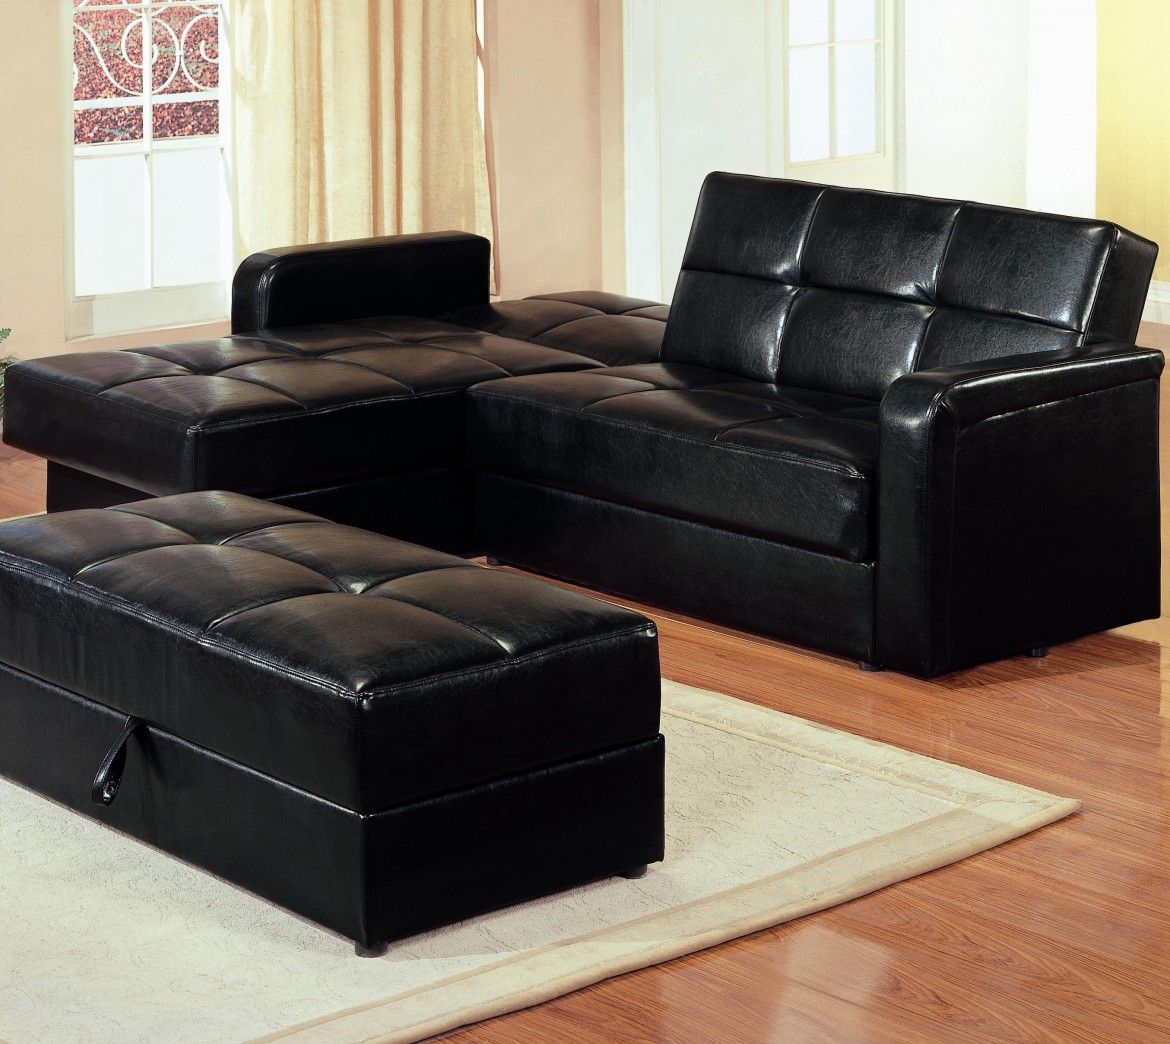 Outstanding Sectional Sleeper Sofas For Small Spaces In 2020